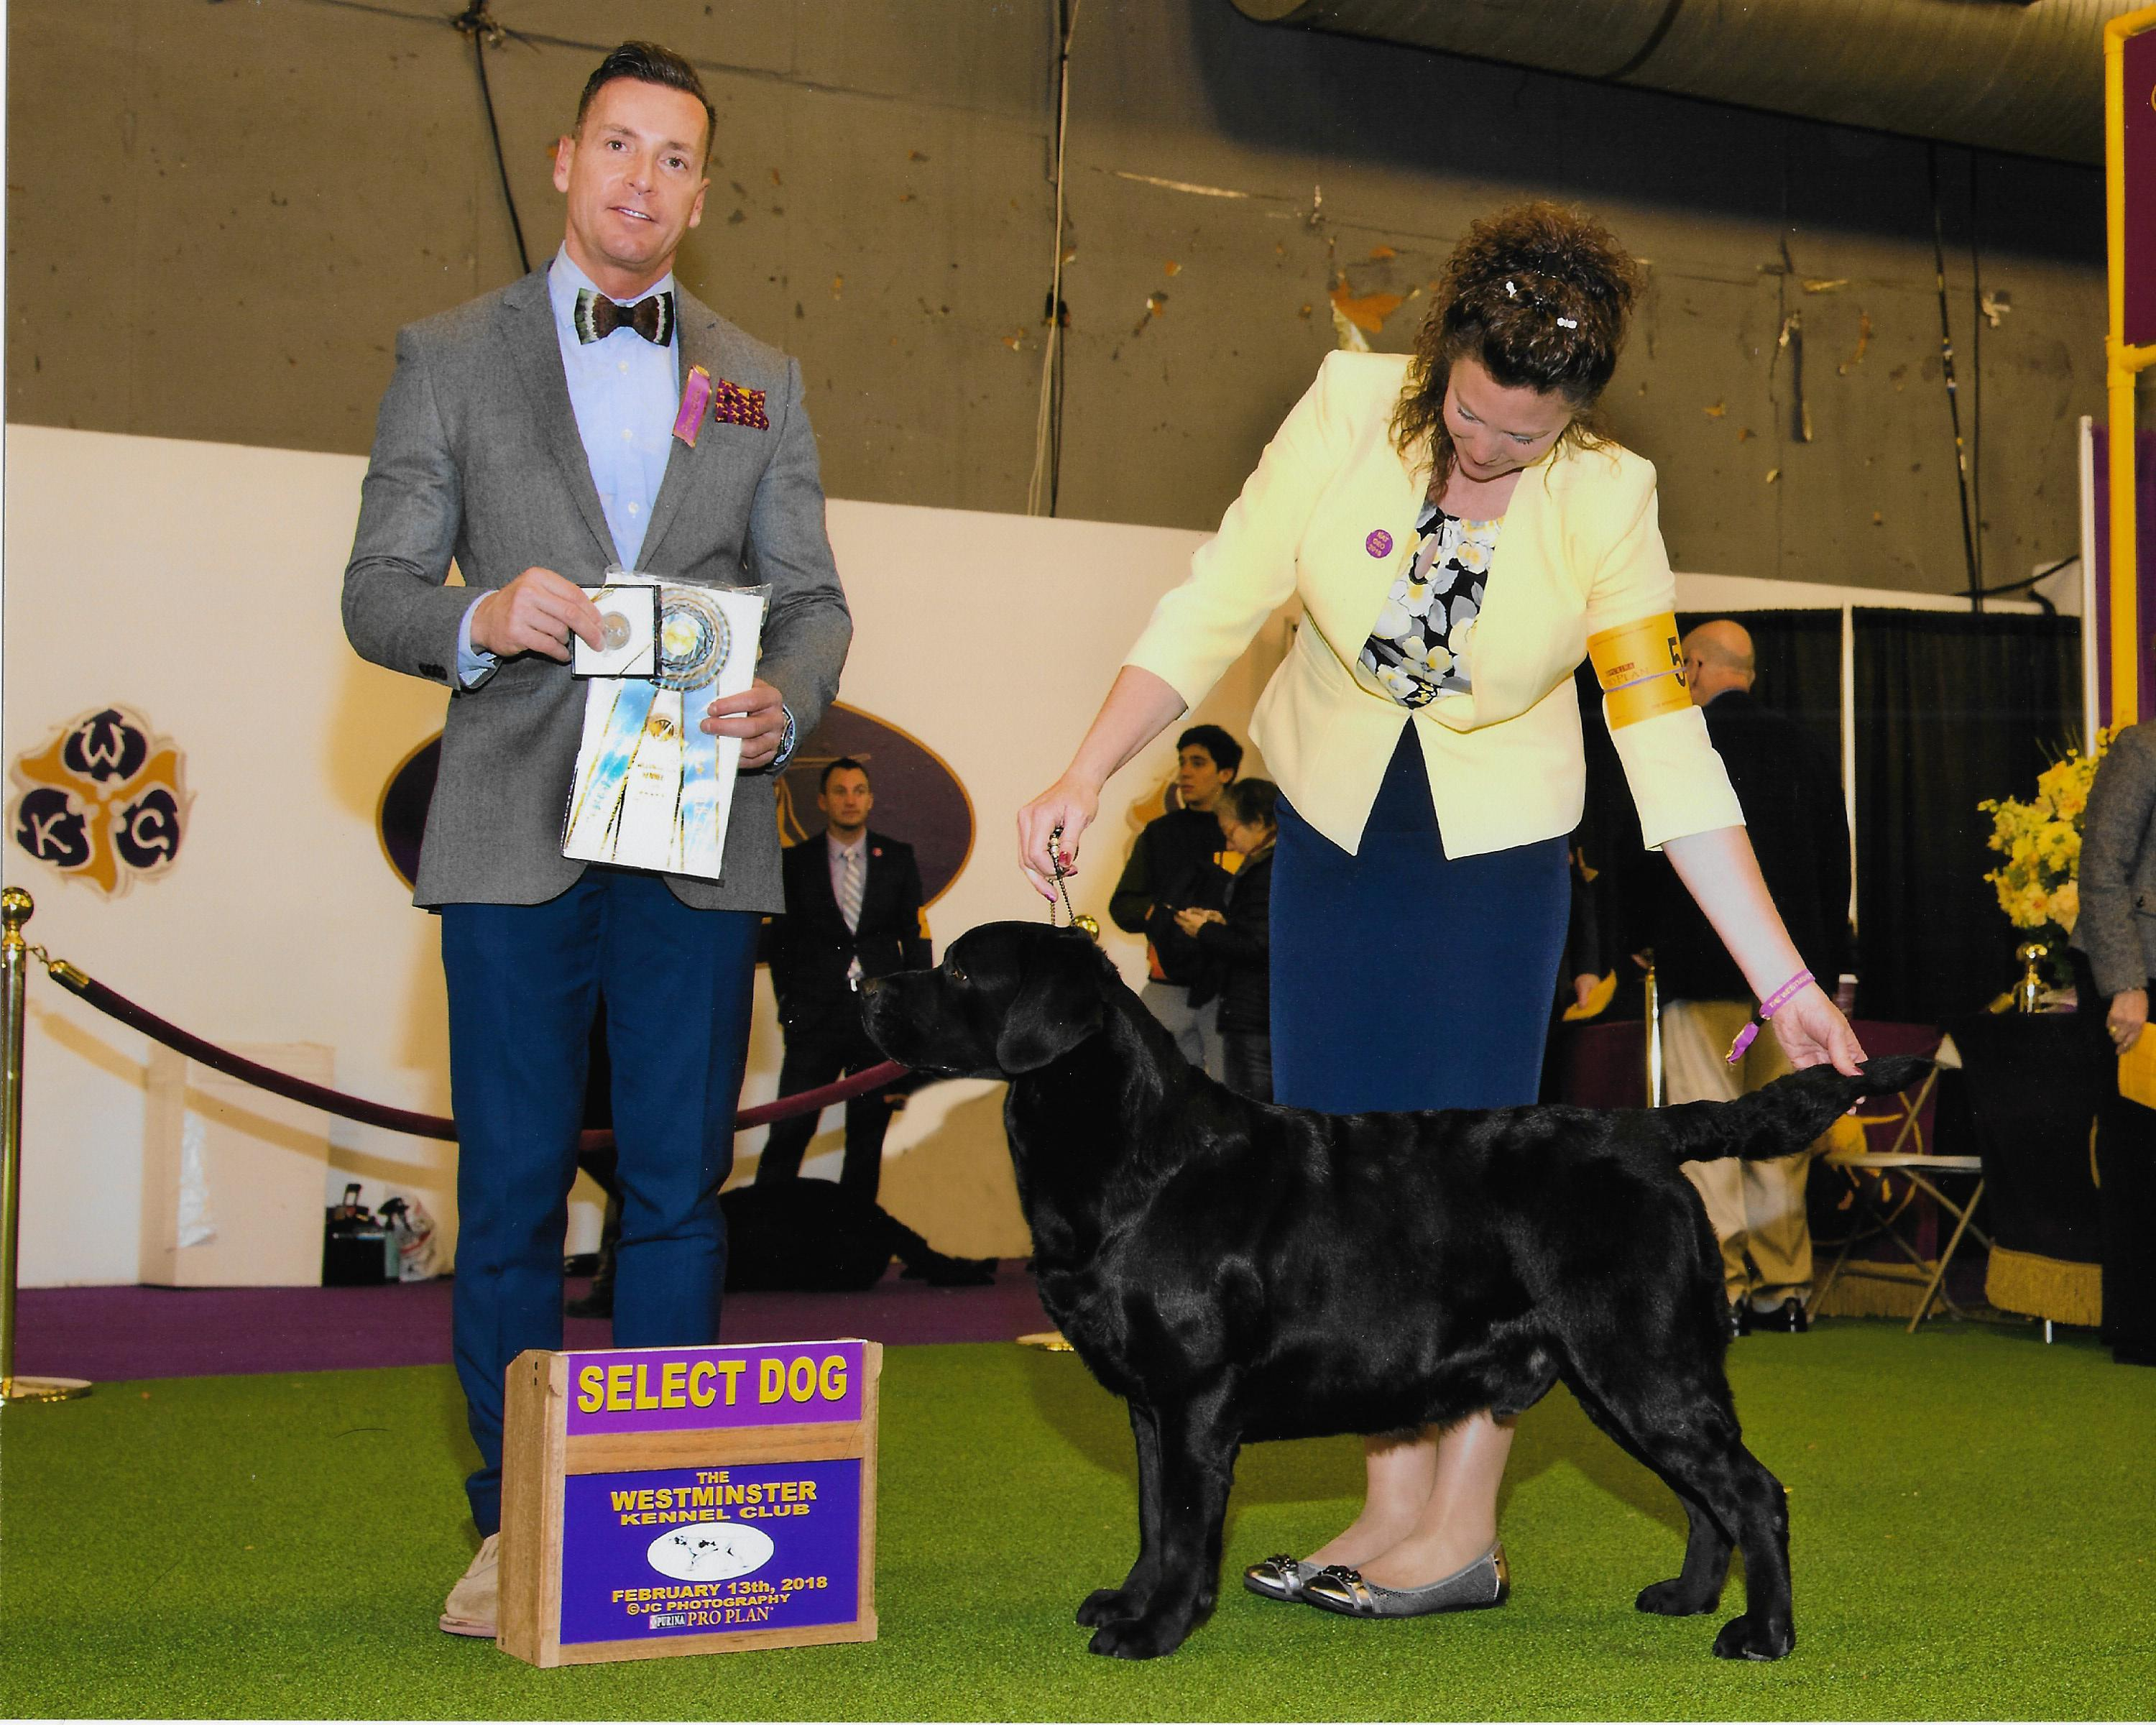 Ricky, Select Dog, Westminster Kennel Club 2018